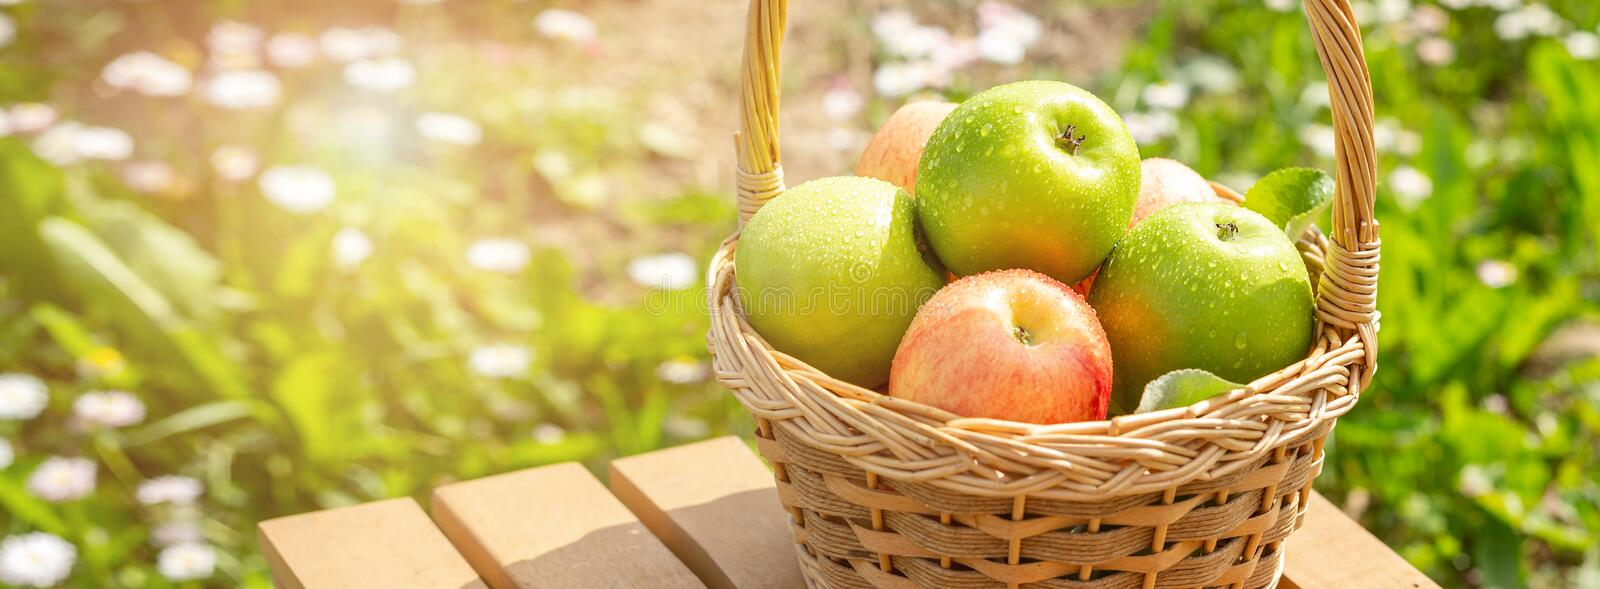 Green and red apples in wicker basket on wooden table Green grass in the garden Harvest time Horisontal banner royalty free stock images